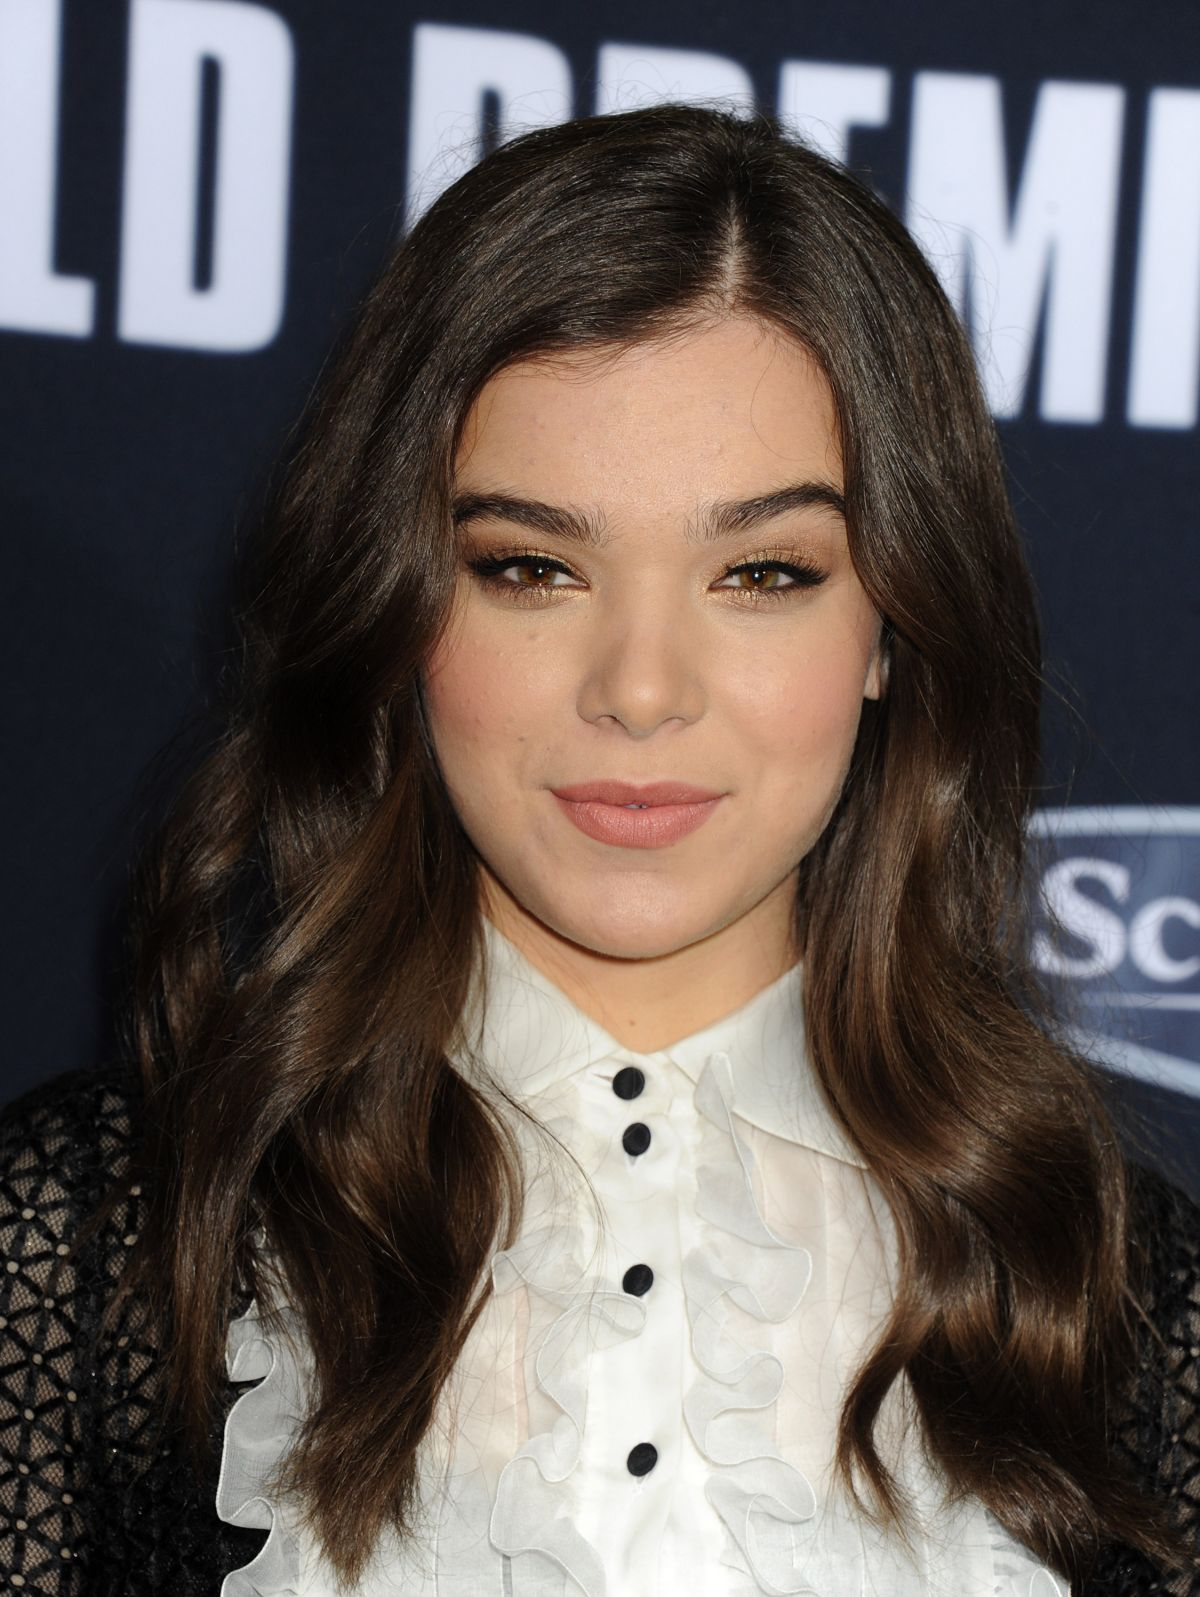 Hailee Steinfeld On The Cover Of Fashion Magazine March: HAILEE STEINFELD At Pitch Perfect 2 Premiere In Los